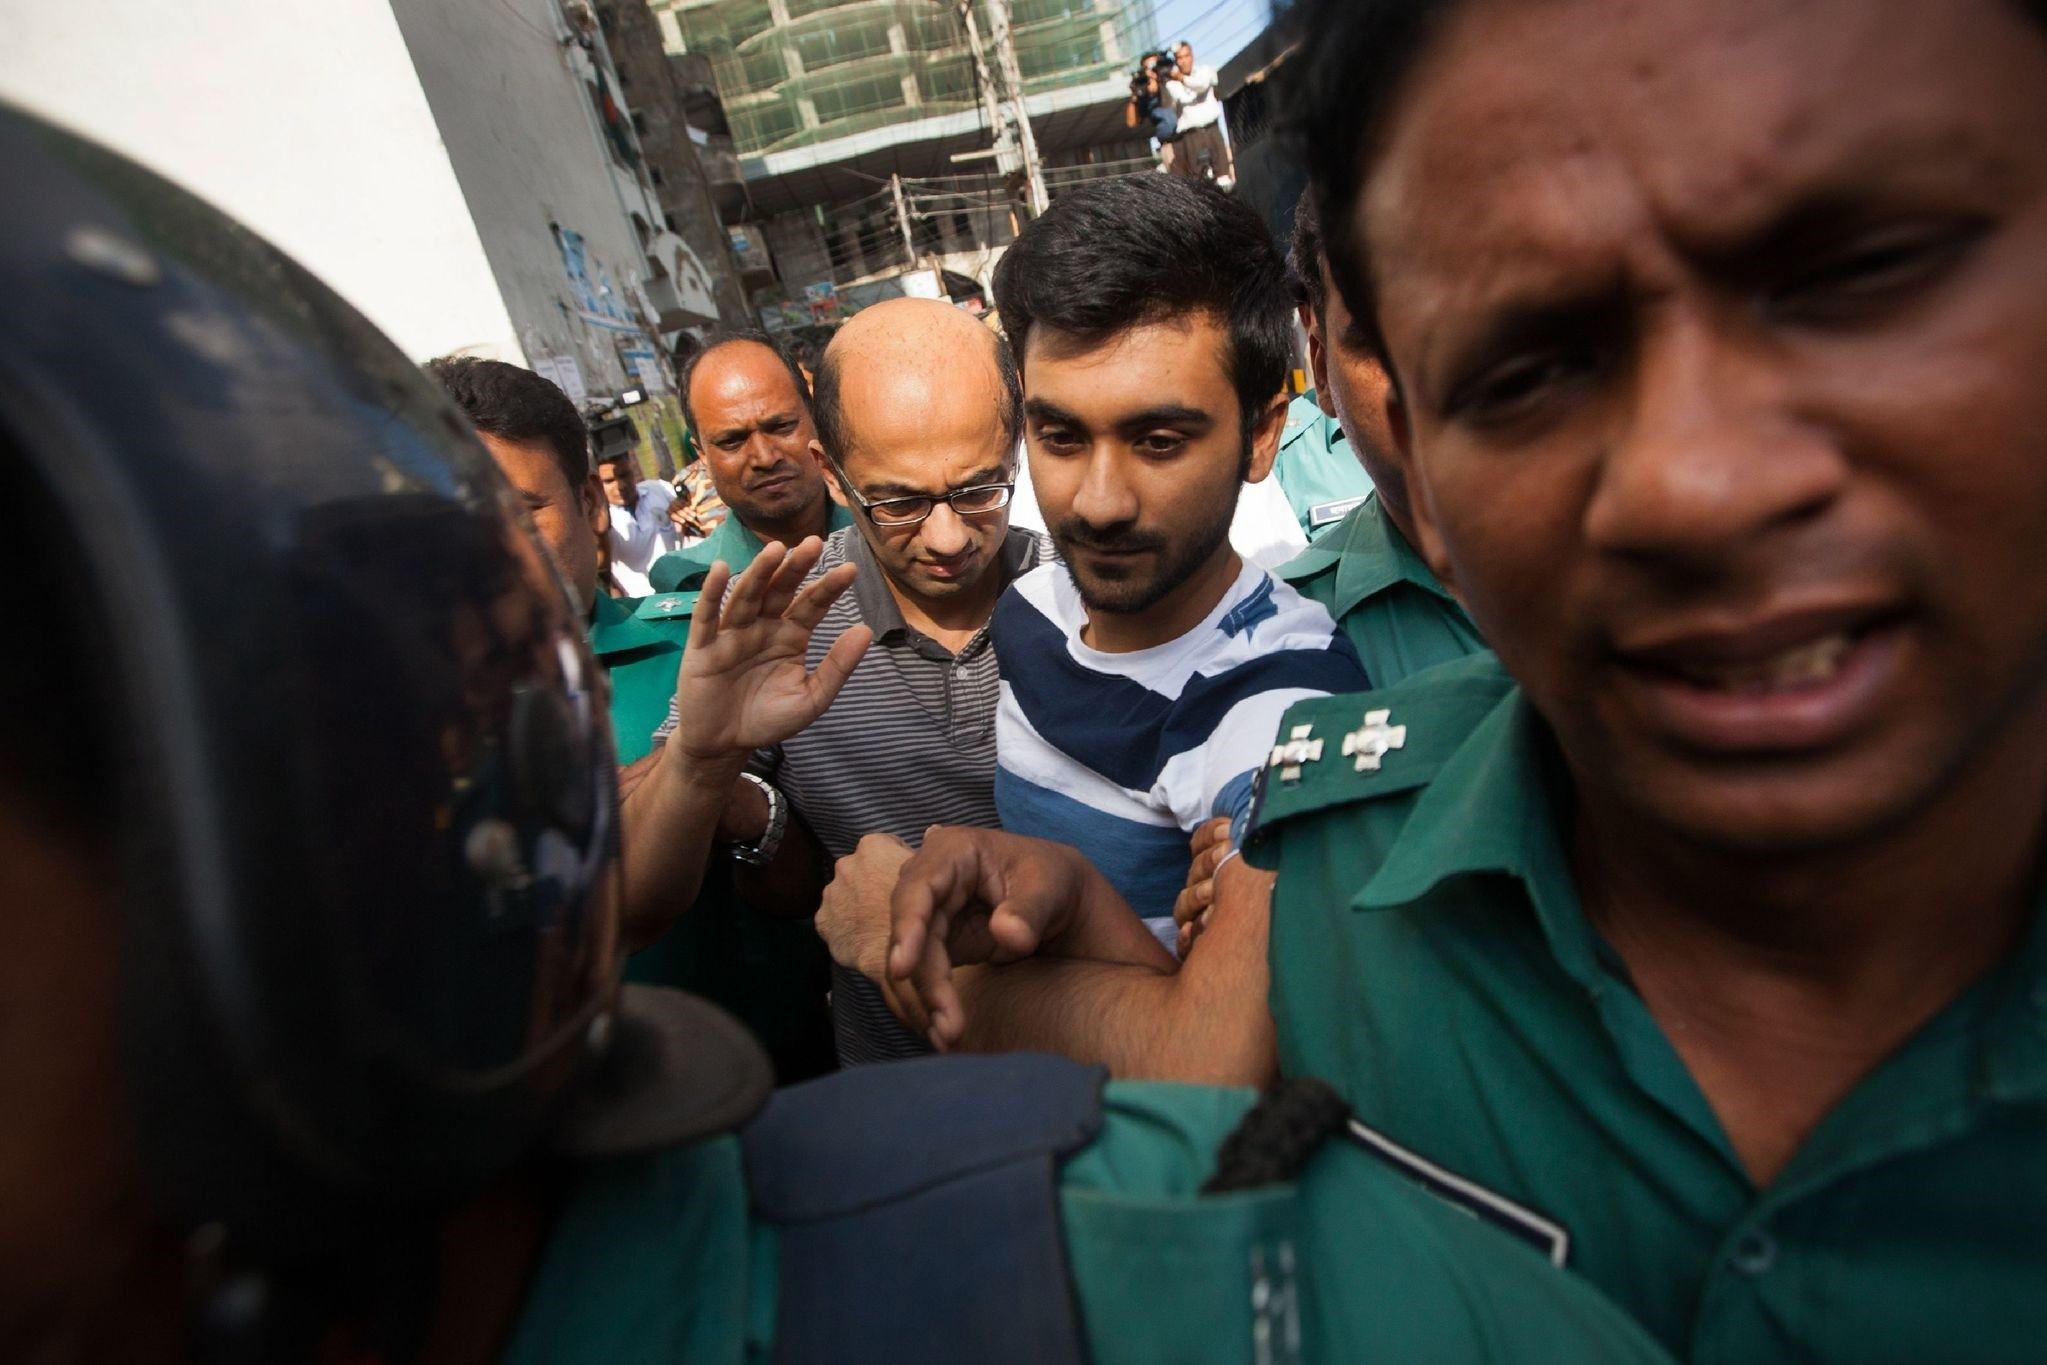 Bangladesh police escort former North South University teacher, Hasnat Karim (C-L)) and Canadian university student, Tahmid Hasib (C-R) towards the court as suspects on August 4, 2016. (AFP Photo)